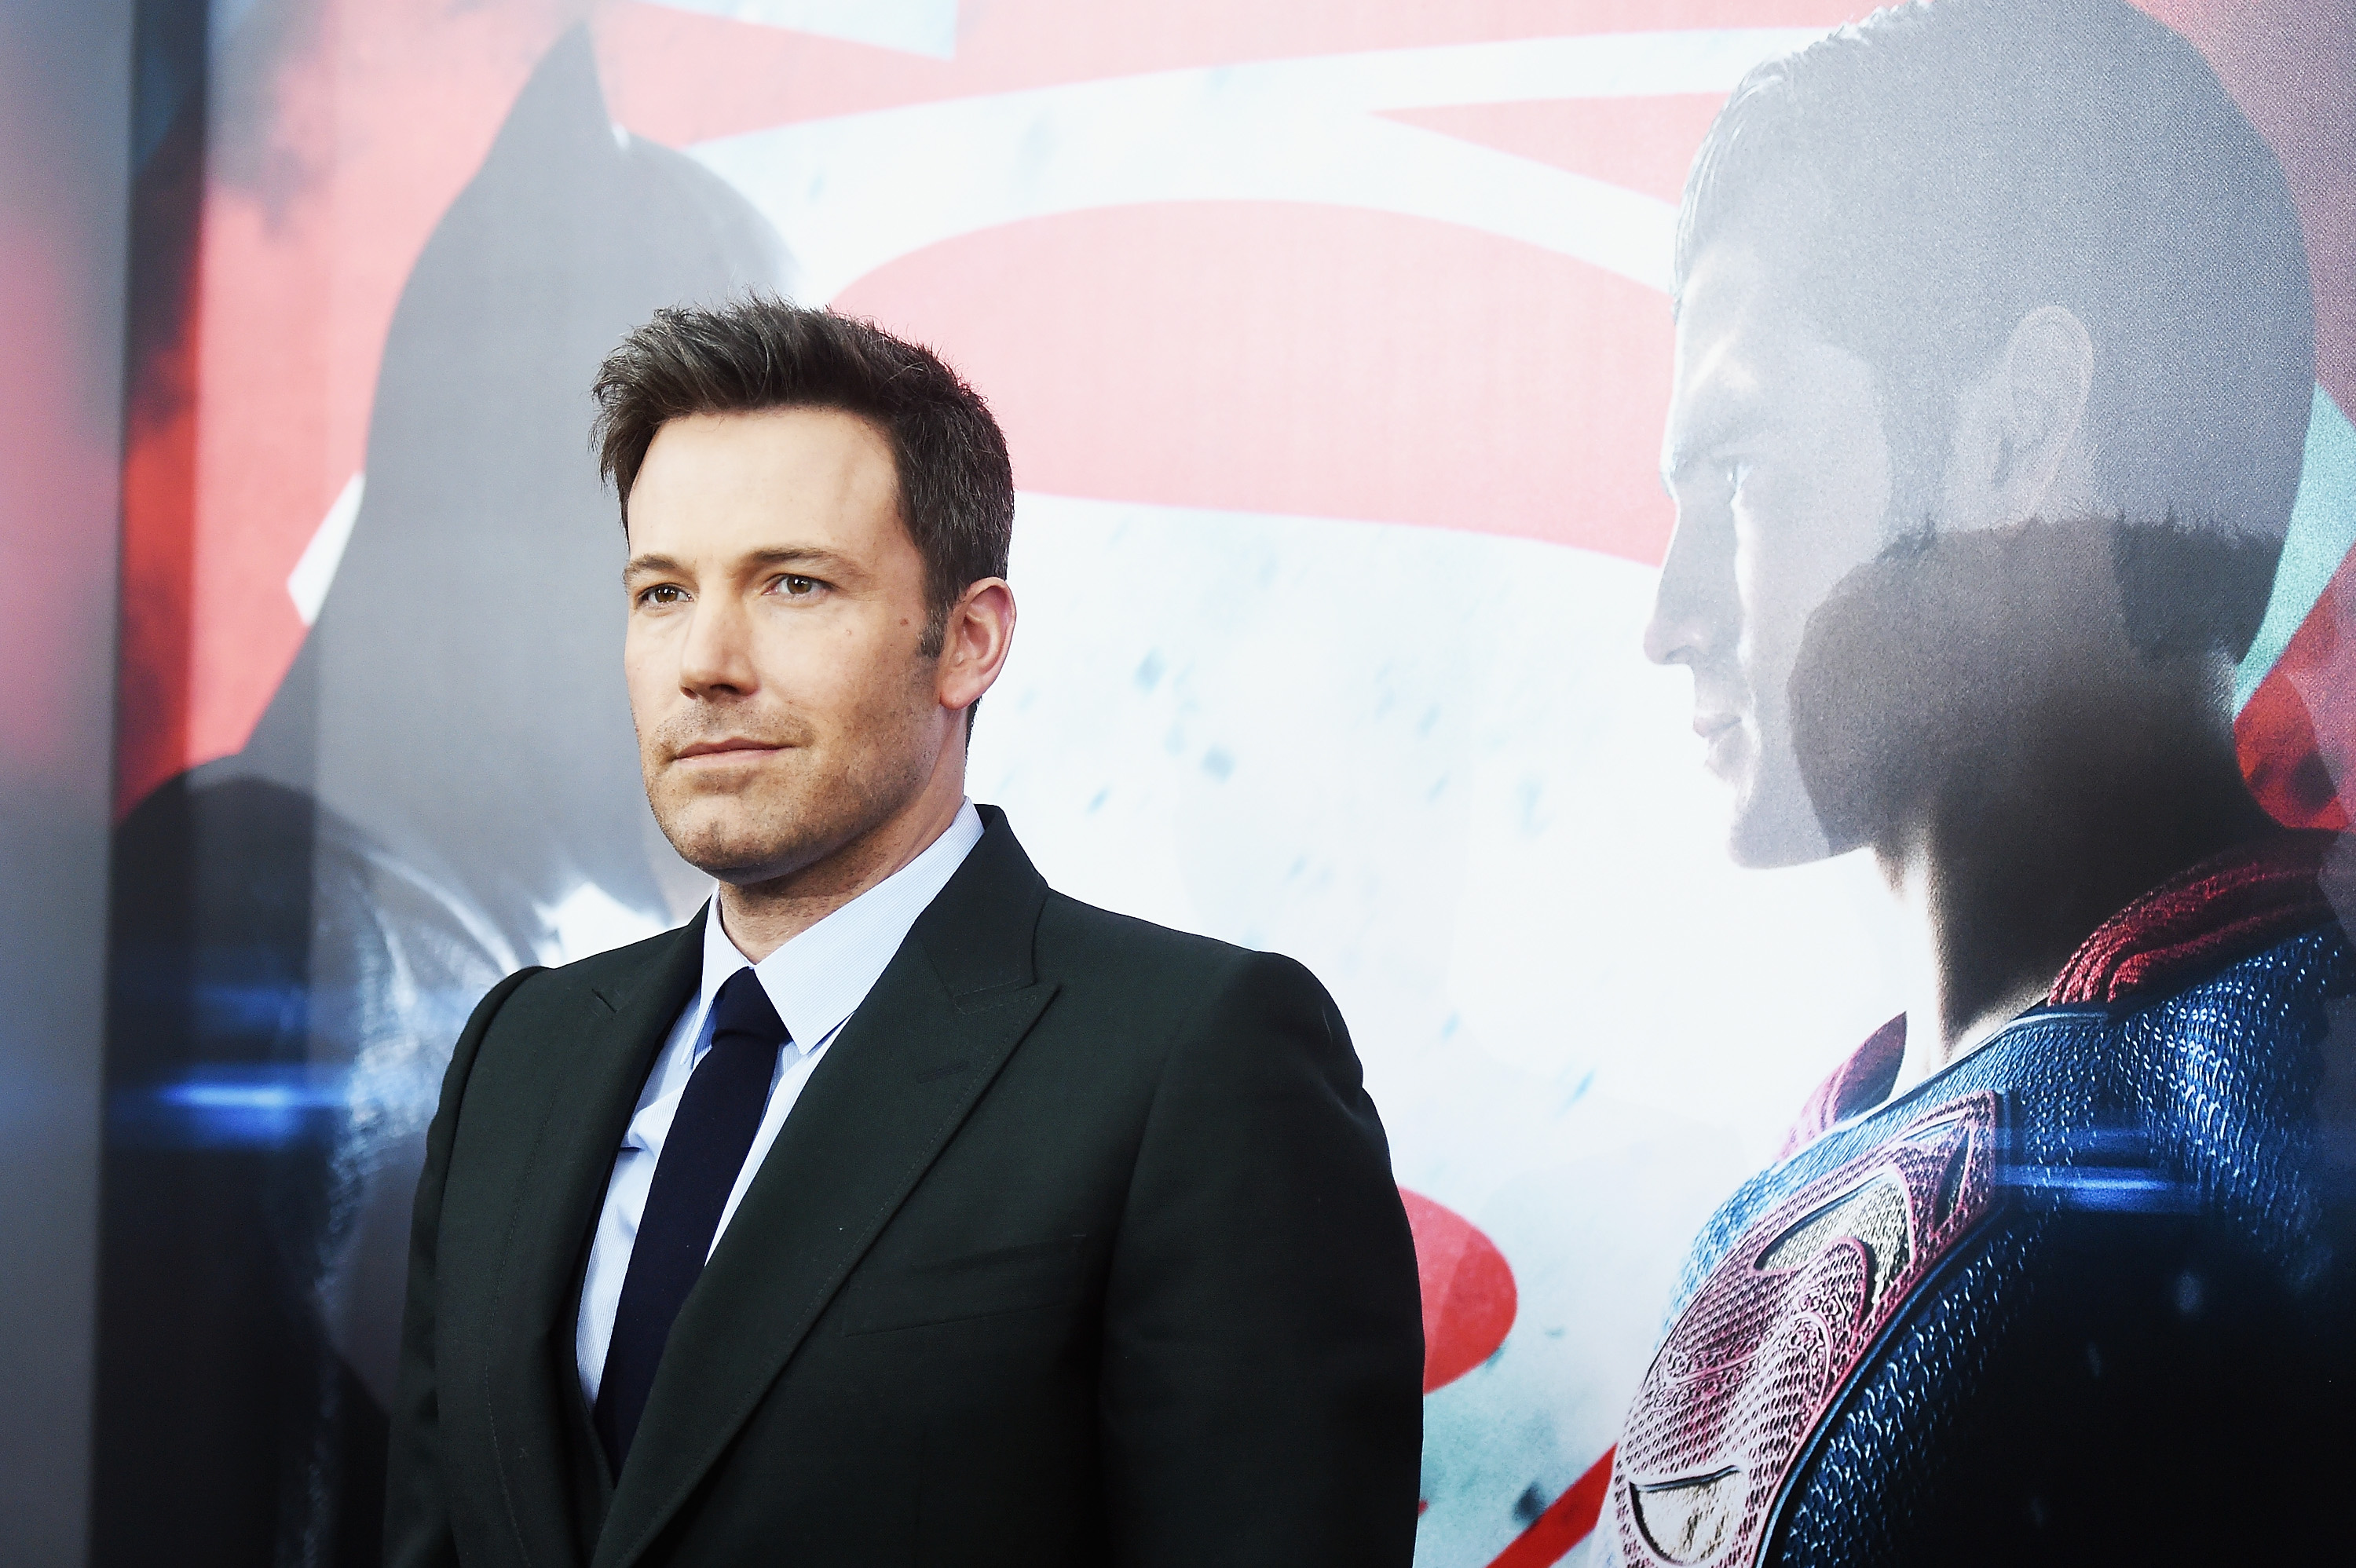 """NEW YORK, NEW YORK - MARCH 20: Actor Ben Affleck attends the """"Batman V Superman: Dawn Of Justice"""" New York Premiere at Radio City Music Hall on March 20, 2016 in New York City. (Photo by Jamie McCarthy/Getty Images)"""